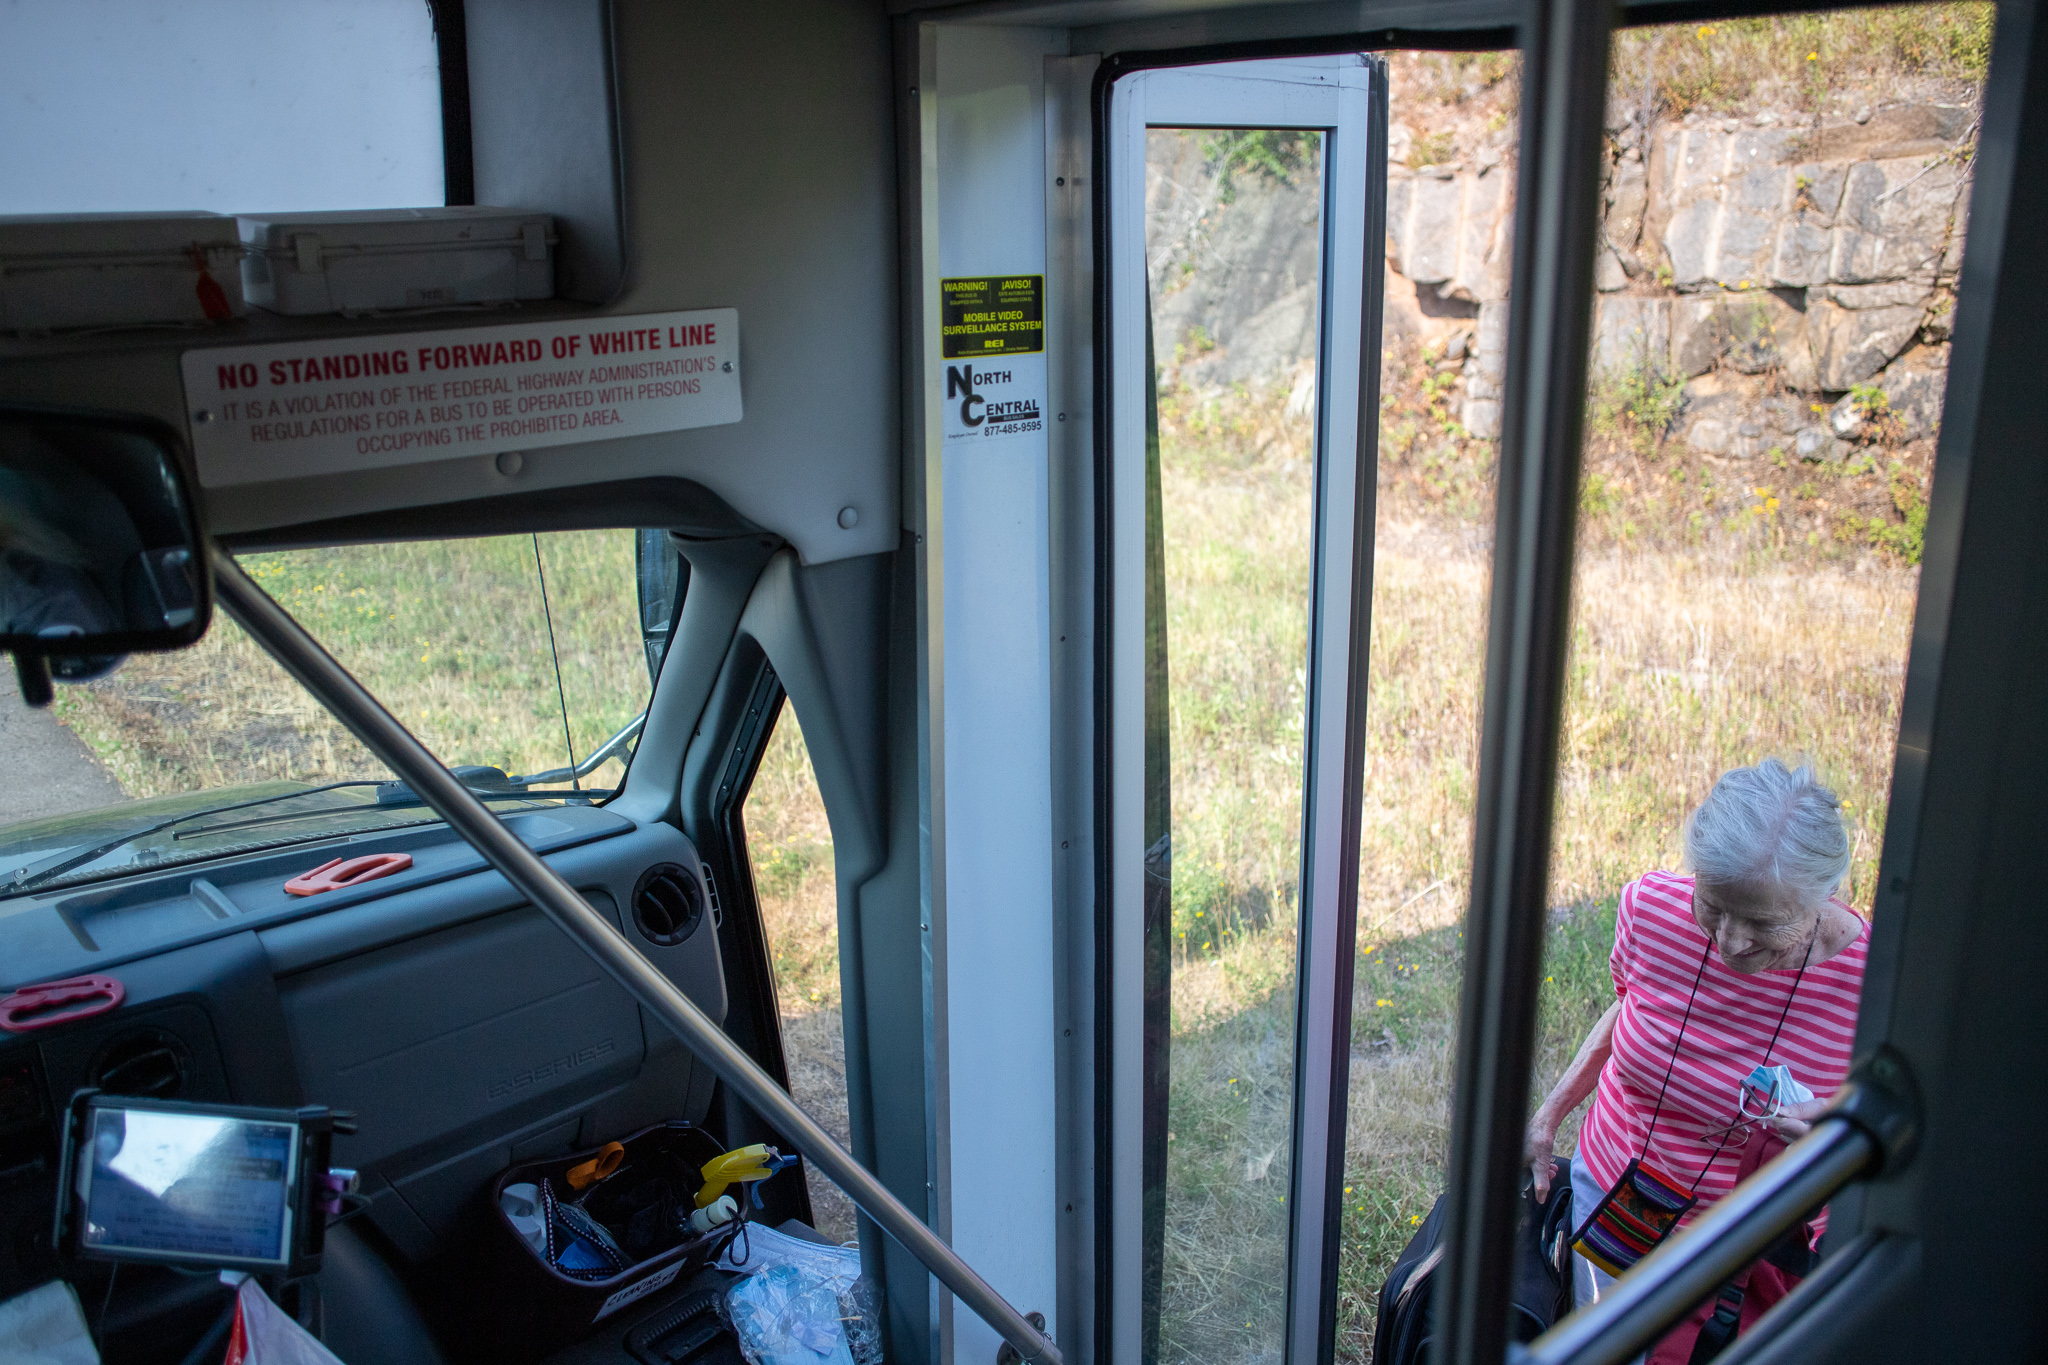 Spotty transit access keeps the carless out of vaunted state park system